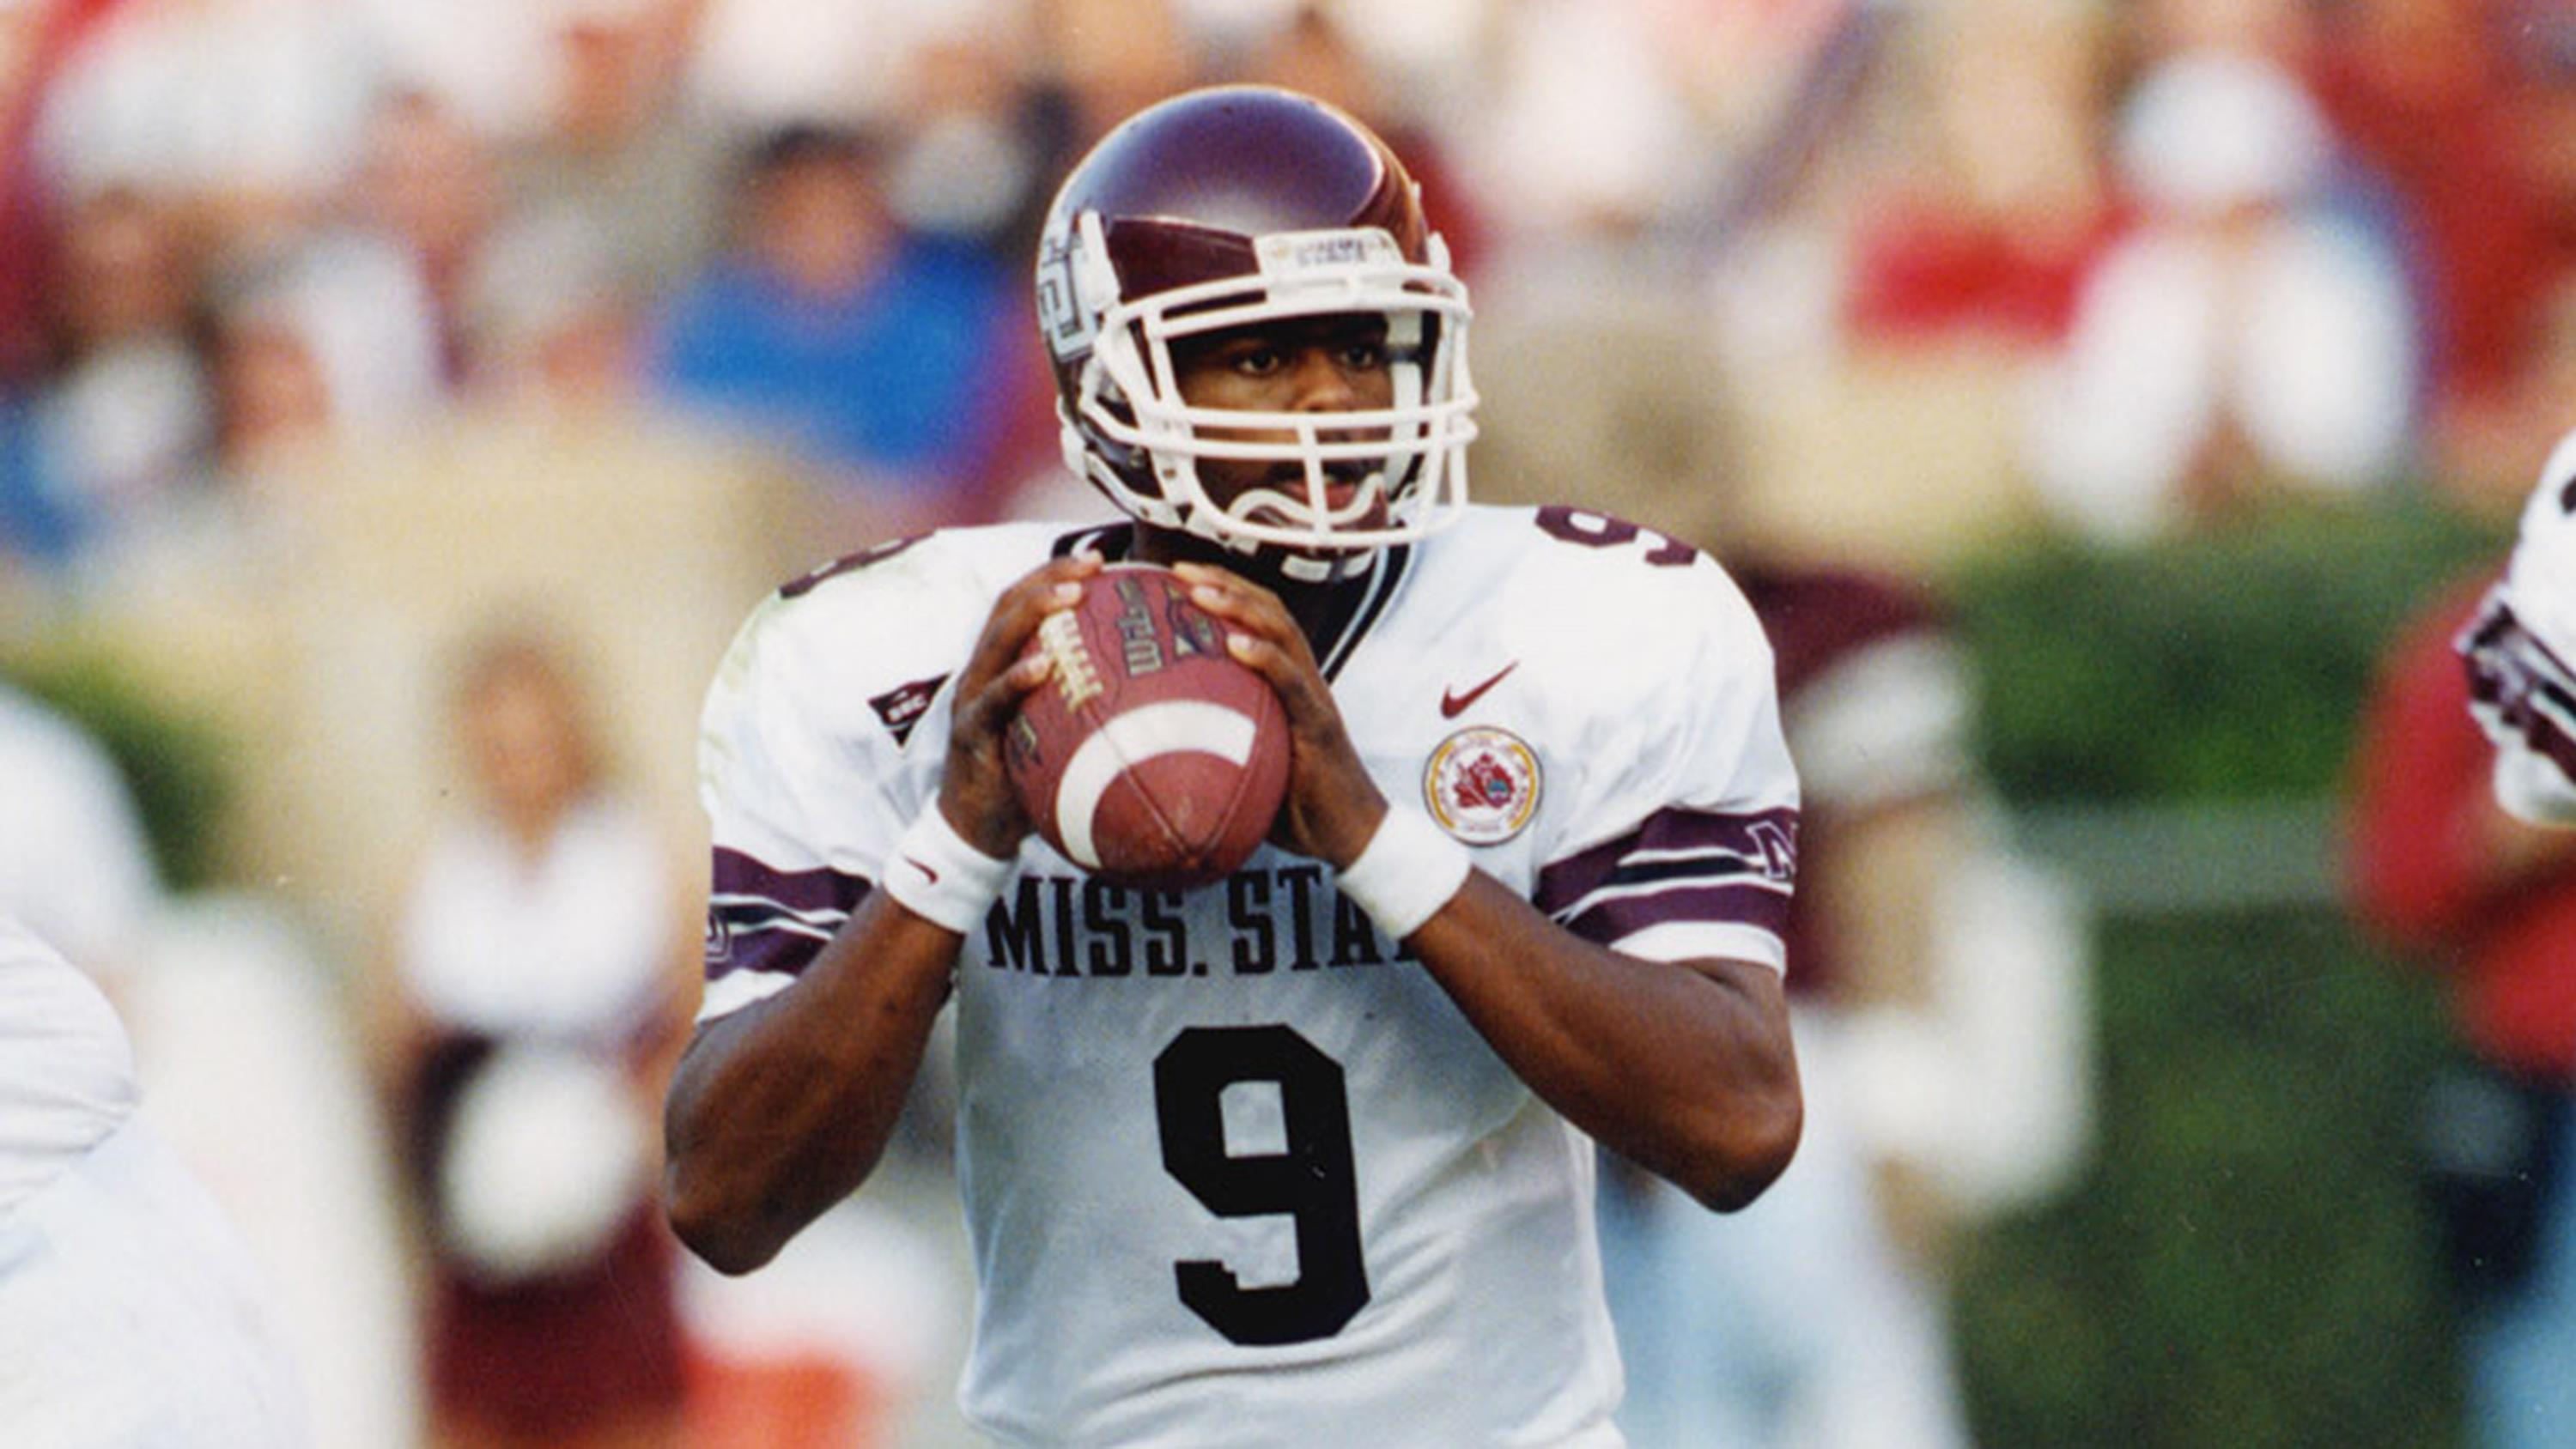 wayne madkin: 2016 msu sports hall of fame inductee - mississippi